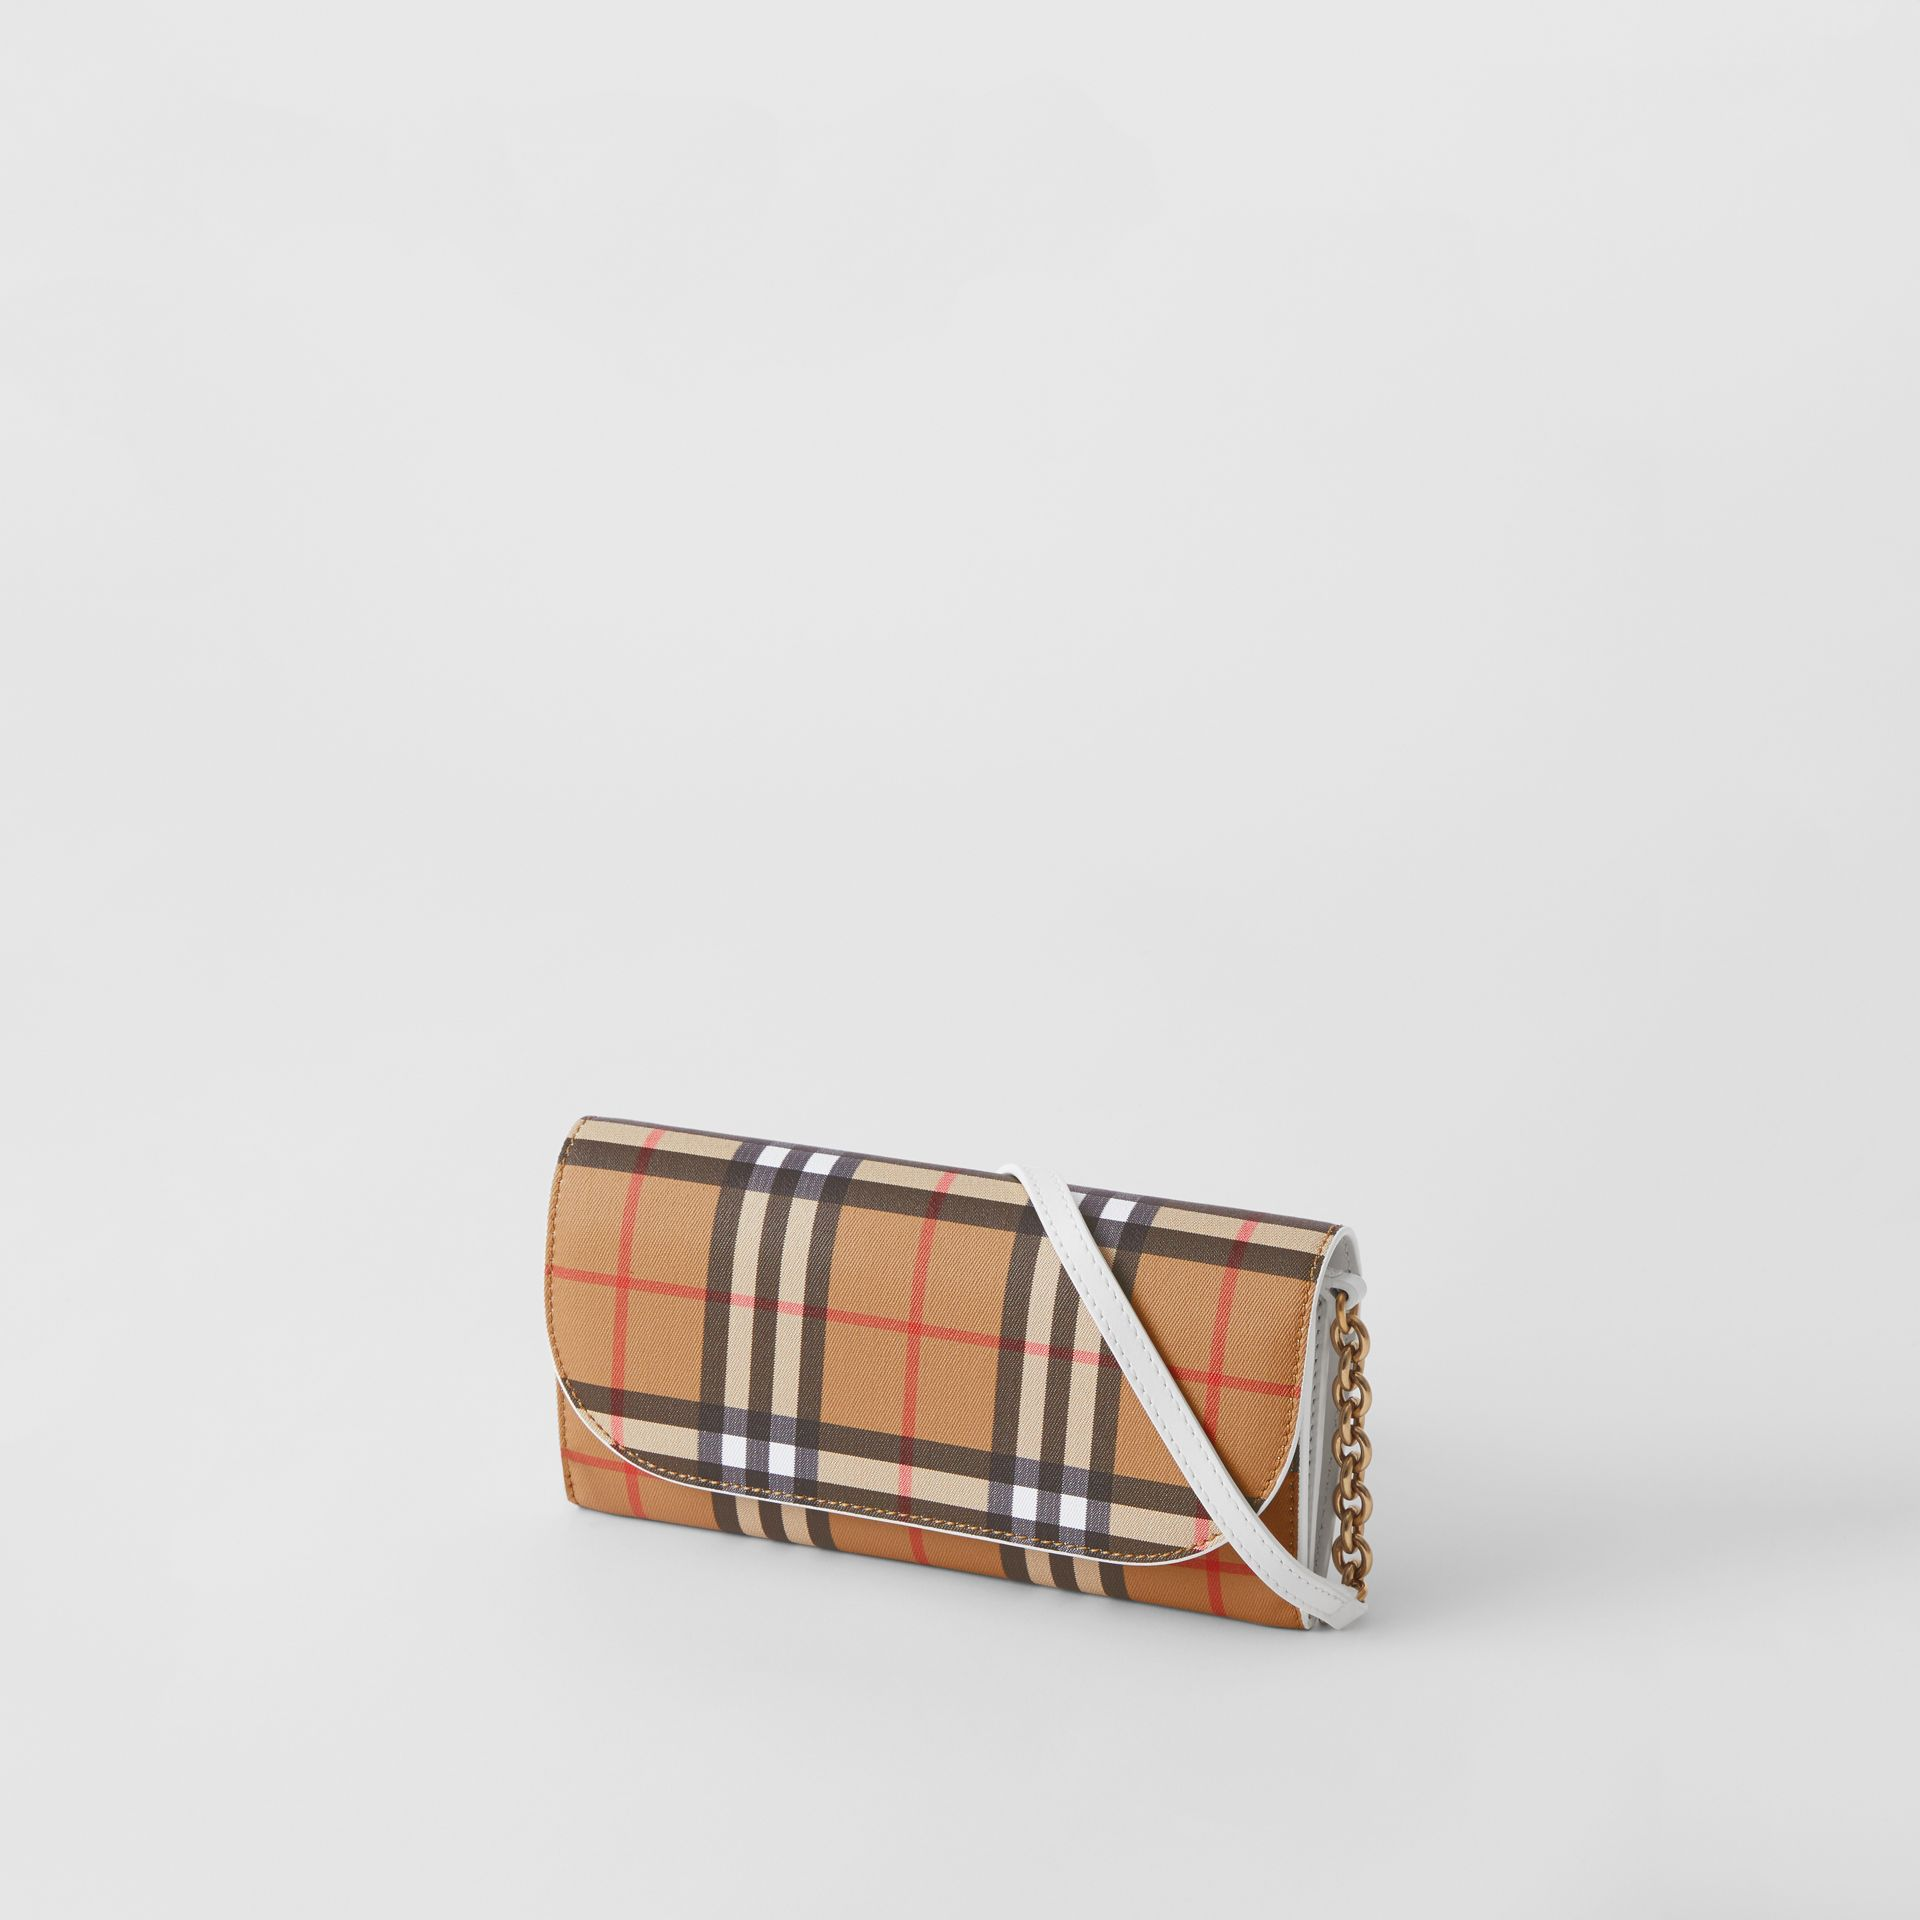 Vintage Check and Leather Wallet with Chain in Chalk White - Women | Burberry Australia - gallery image 3